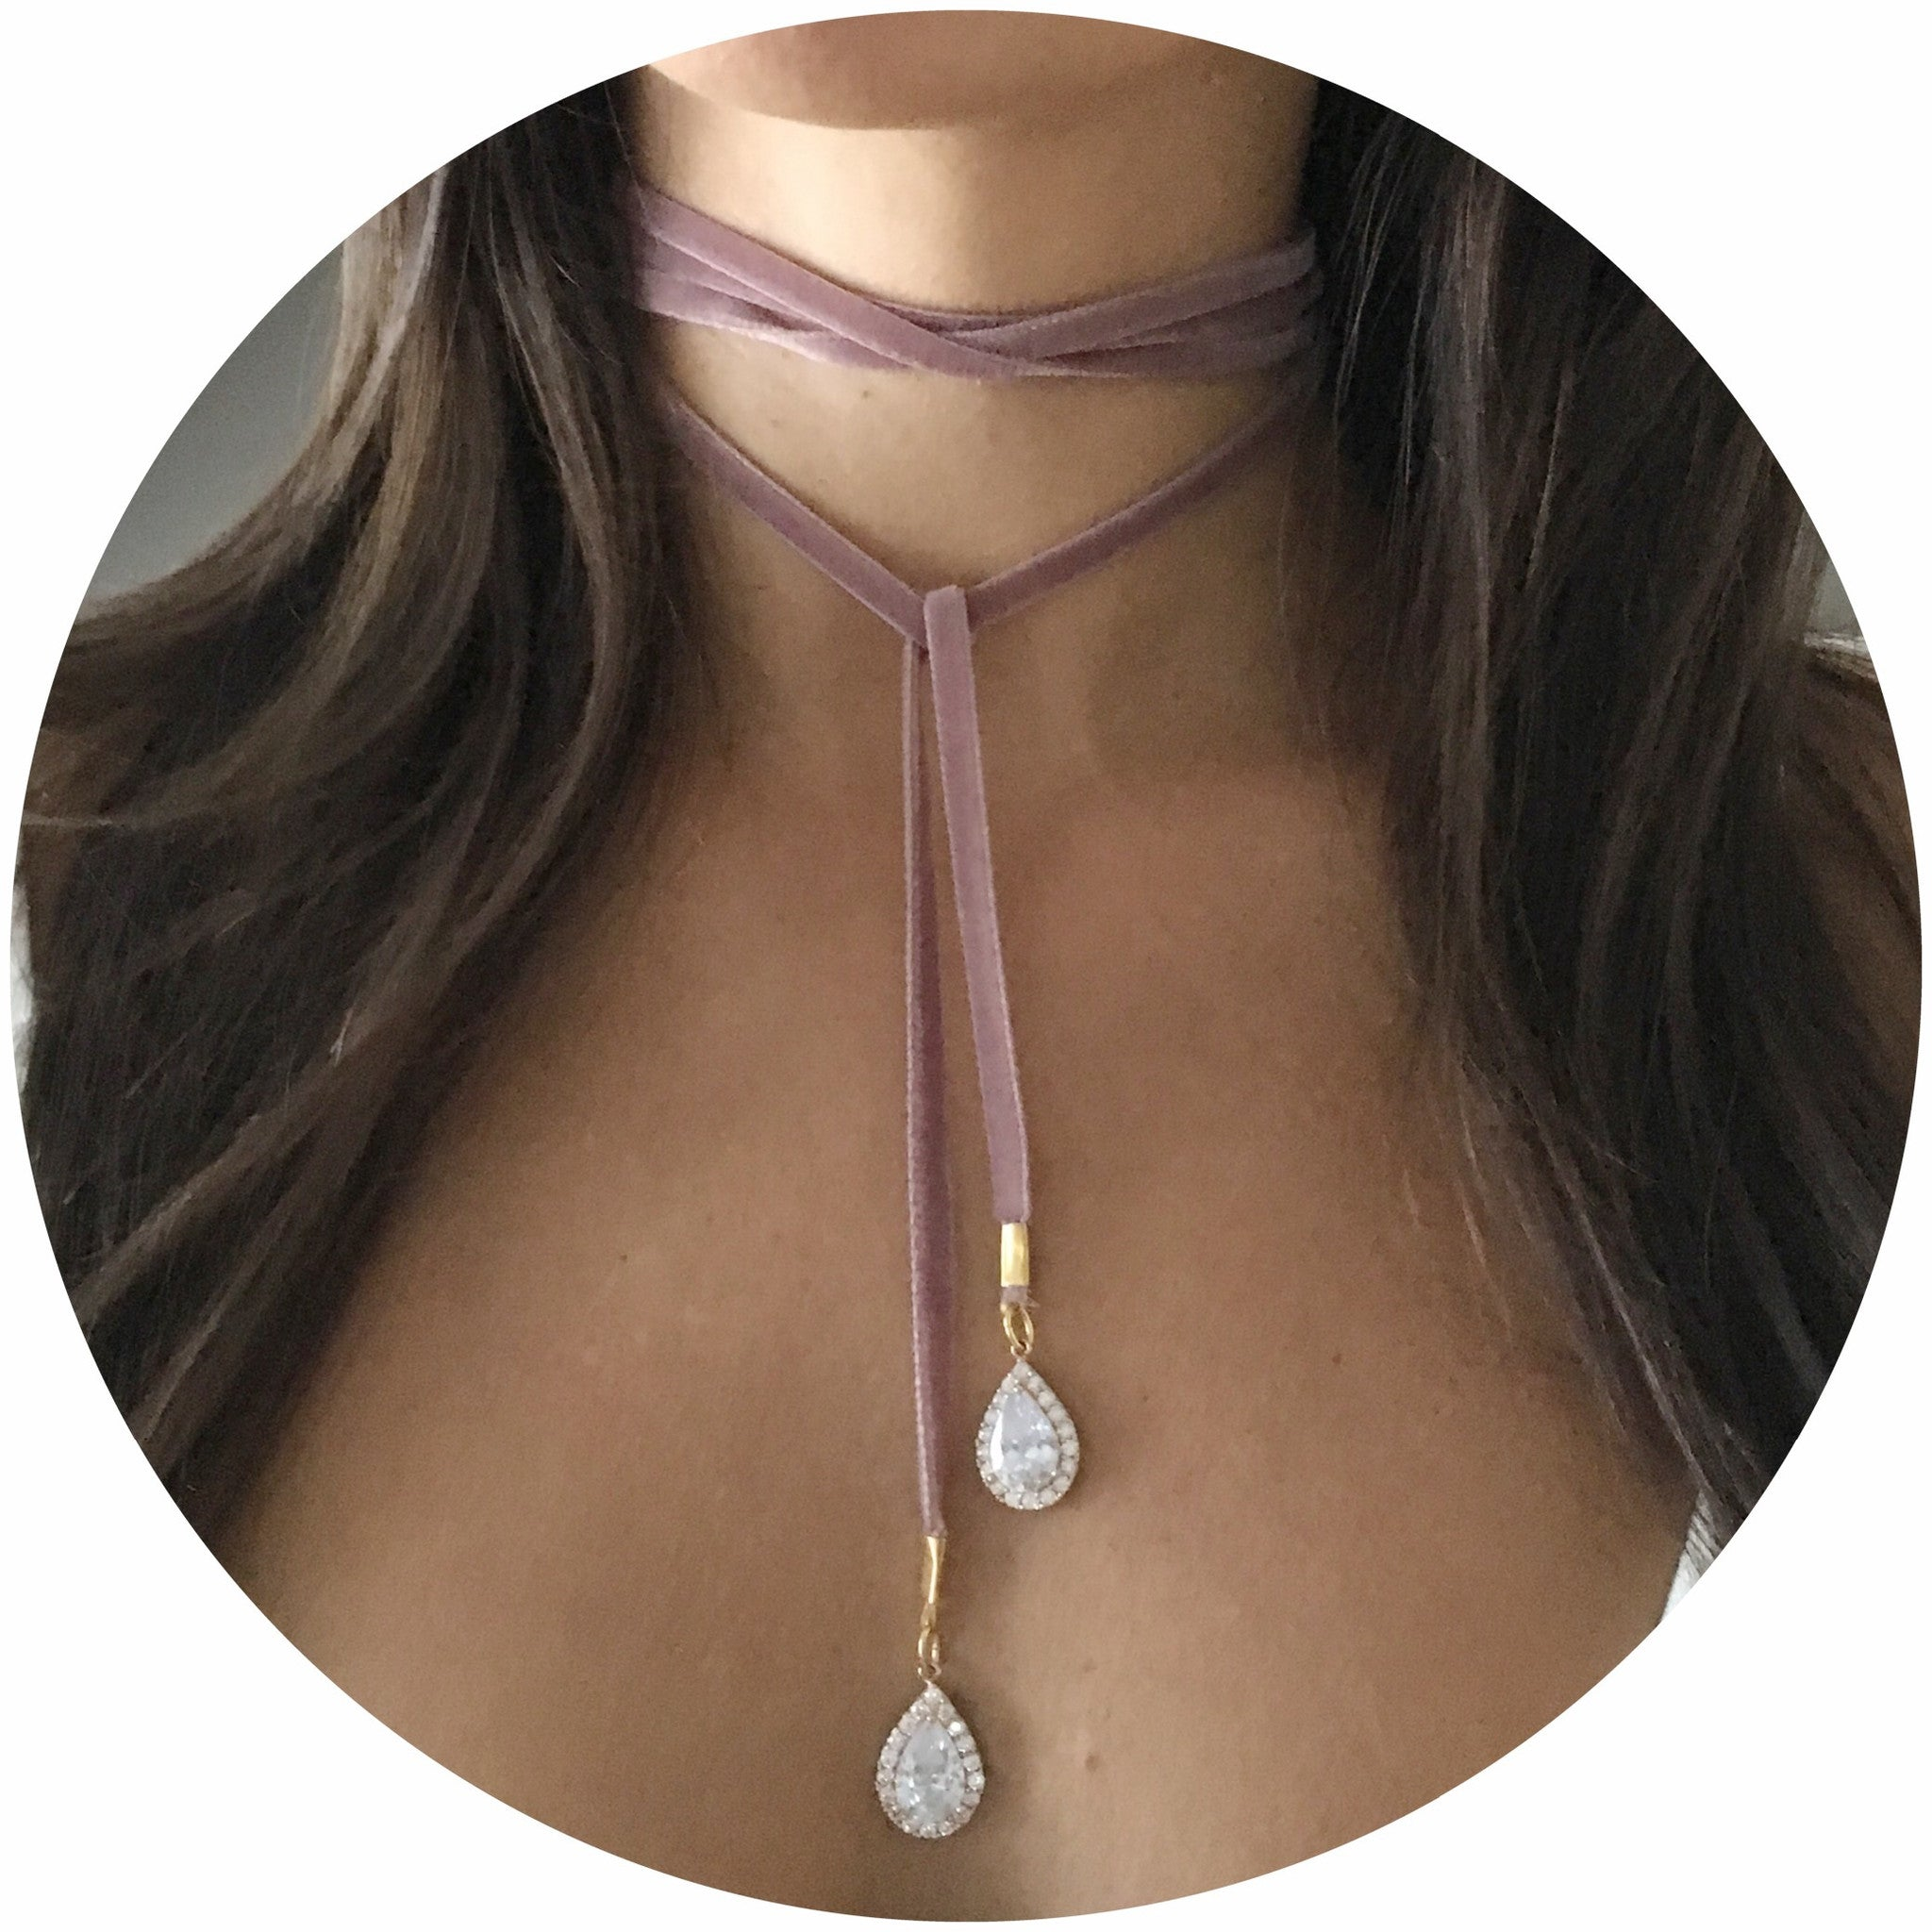 Dusty Rose Velvet Choker Wrap Necklace with Pavé Teardrops - Oriana Lamarca LLC